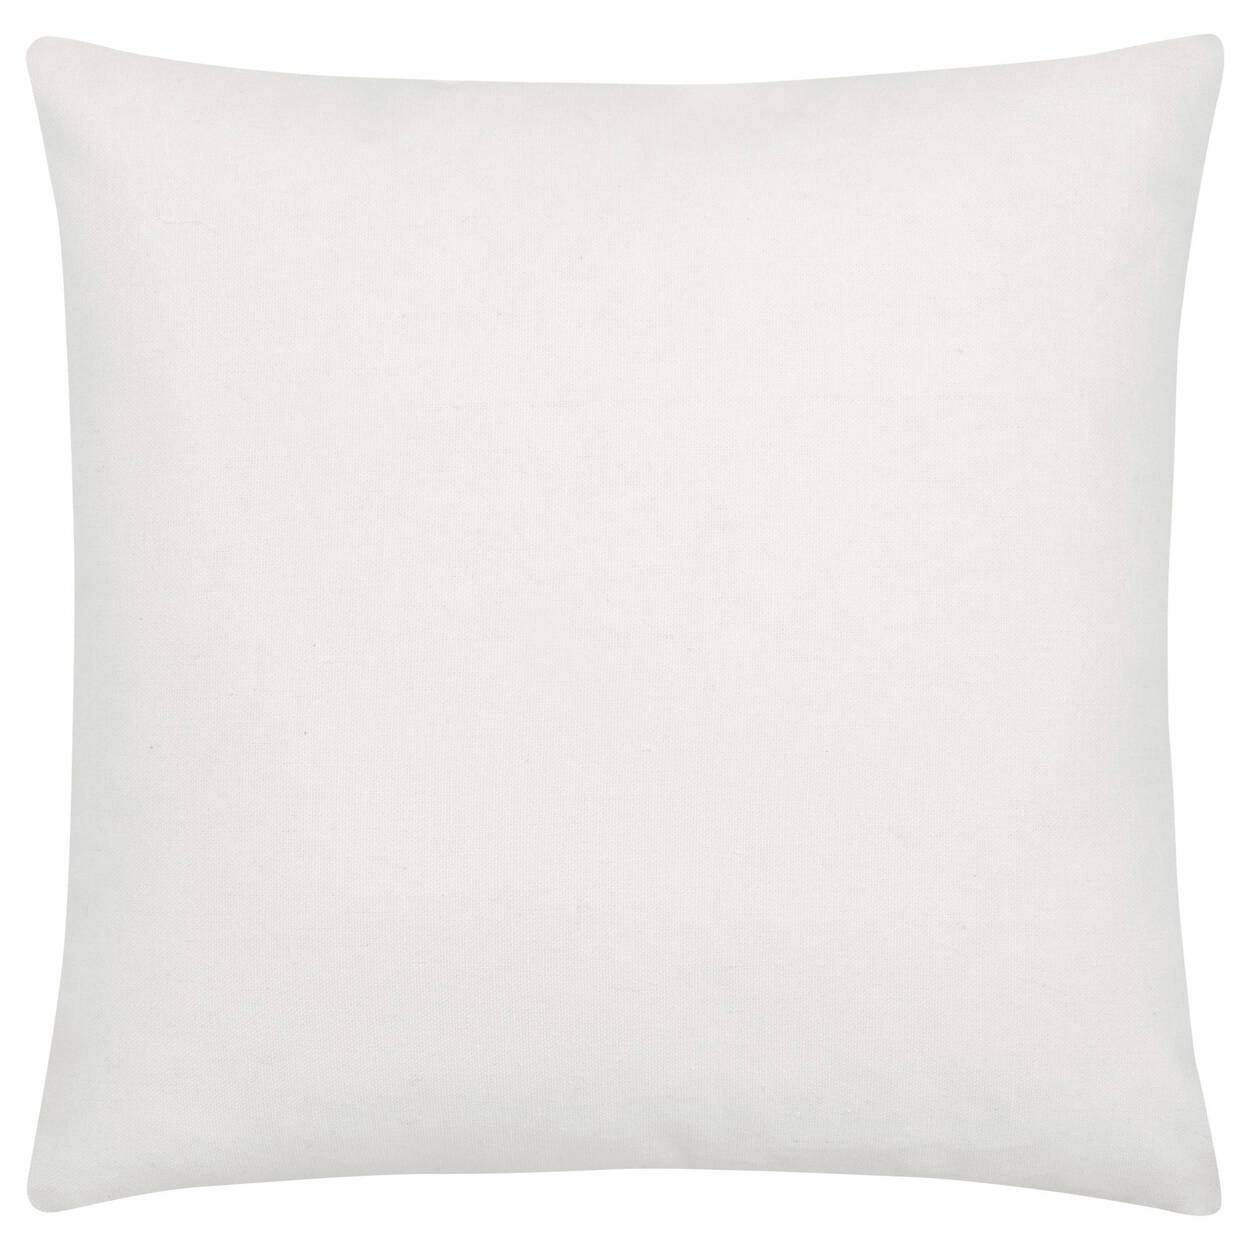 "Zadie Embroidered Decorative Pillow 17"" X 17"""